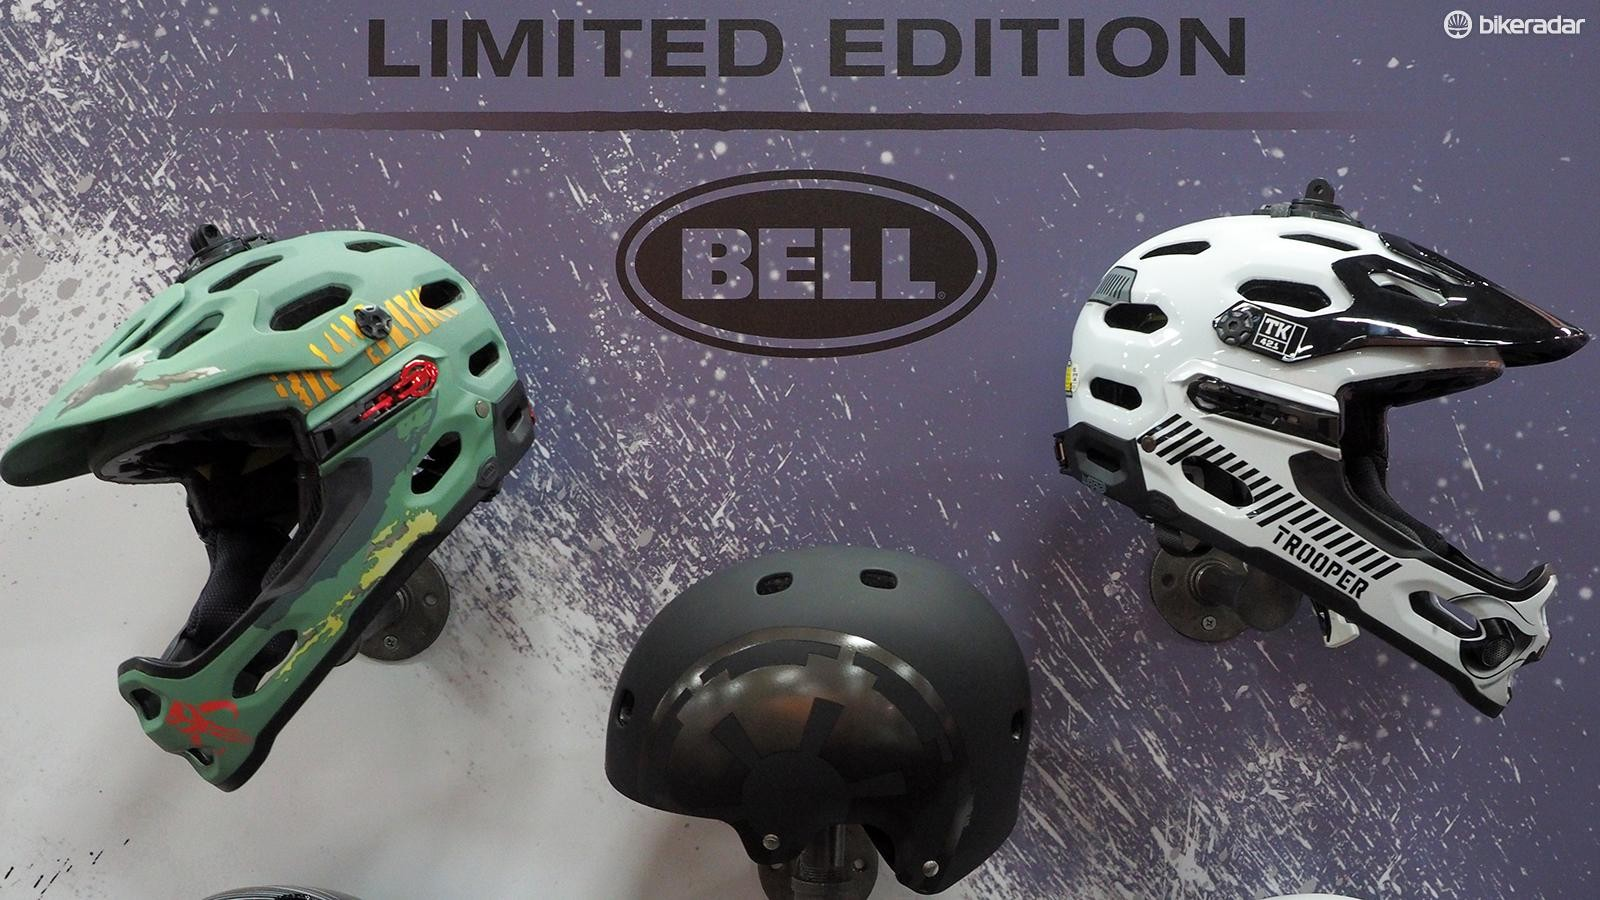 Bell has partnered with Star Wars for a collection of themed helmet designs